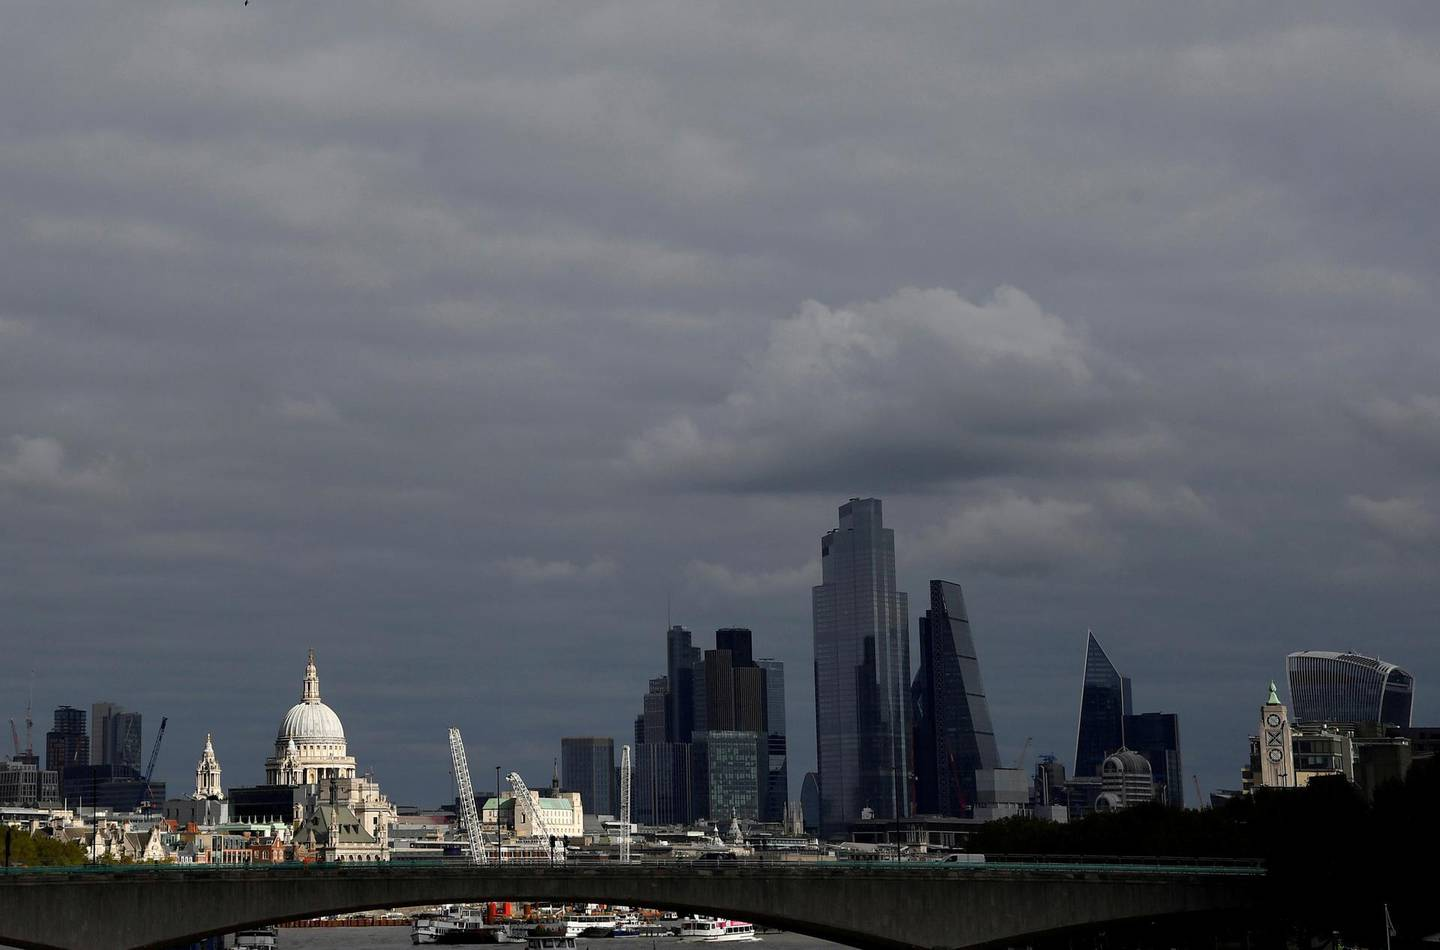 FILE PHOTO: St Paul's Cathedral is seen together with skyscrapers in the City of London financial district, Britain, October 16, 2020. REUTERS/Toby Melville/File Photo